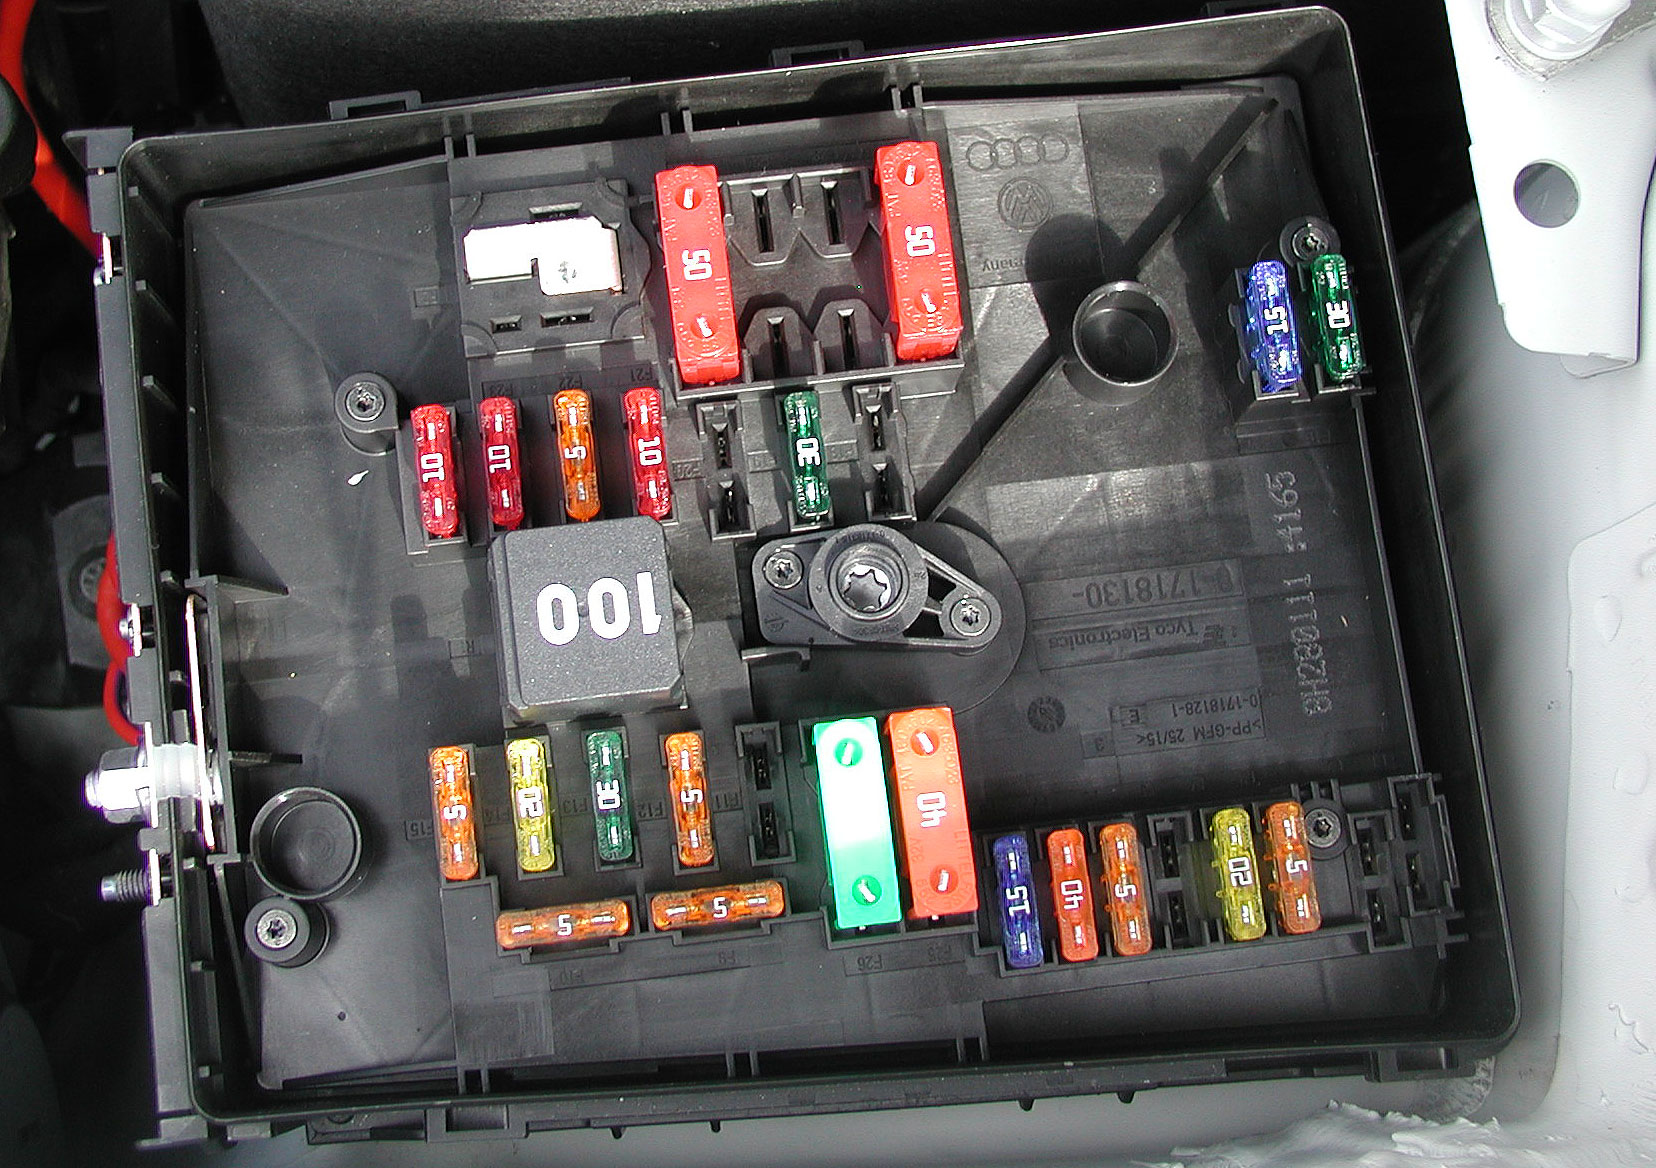 2011 golf tdi fuse box picture please tdiclub forums rh forums tdiclub com  2011 golf gti fuse diagram 2011 golf gti fuse box diagram